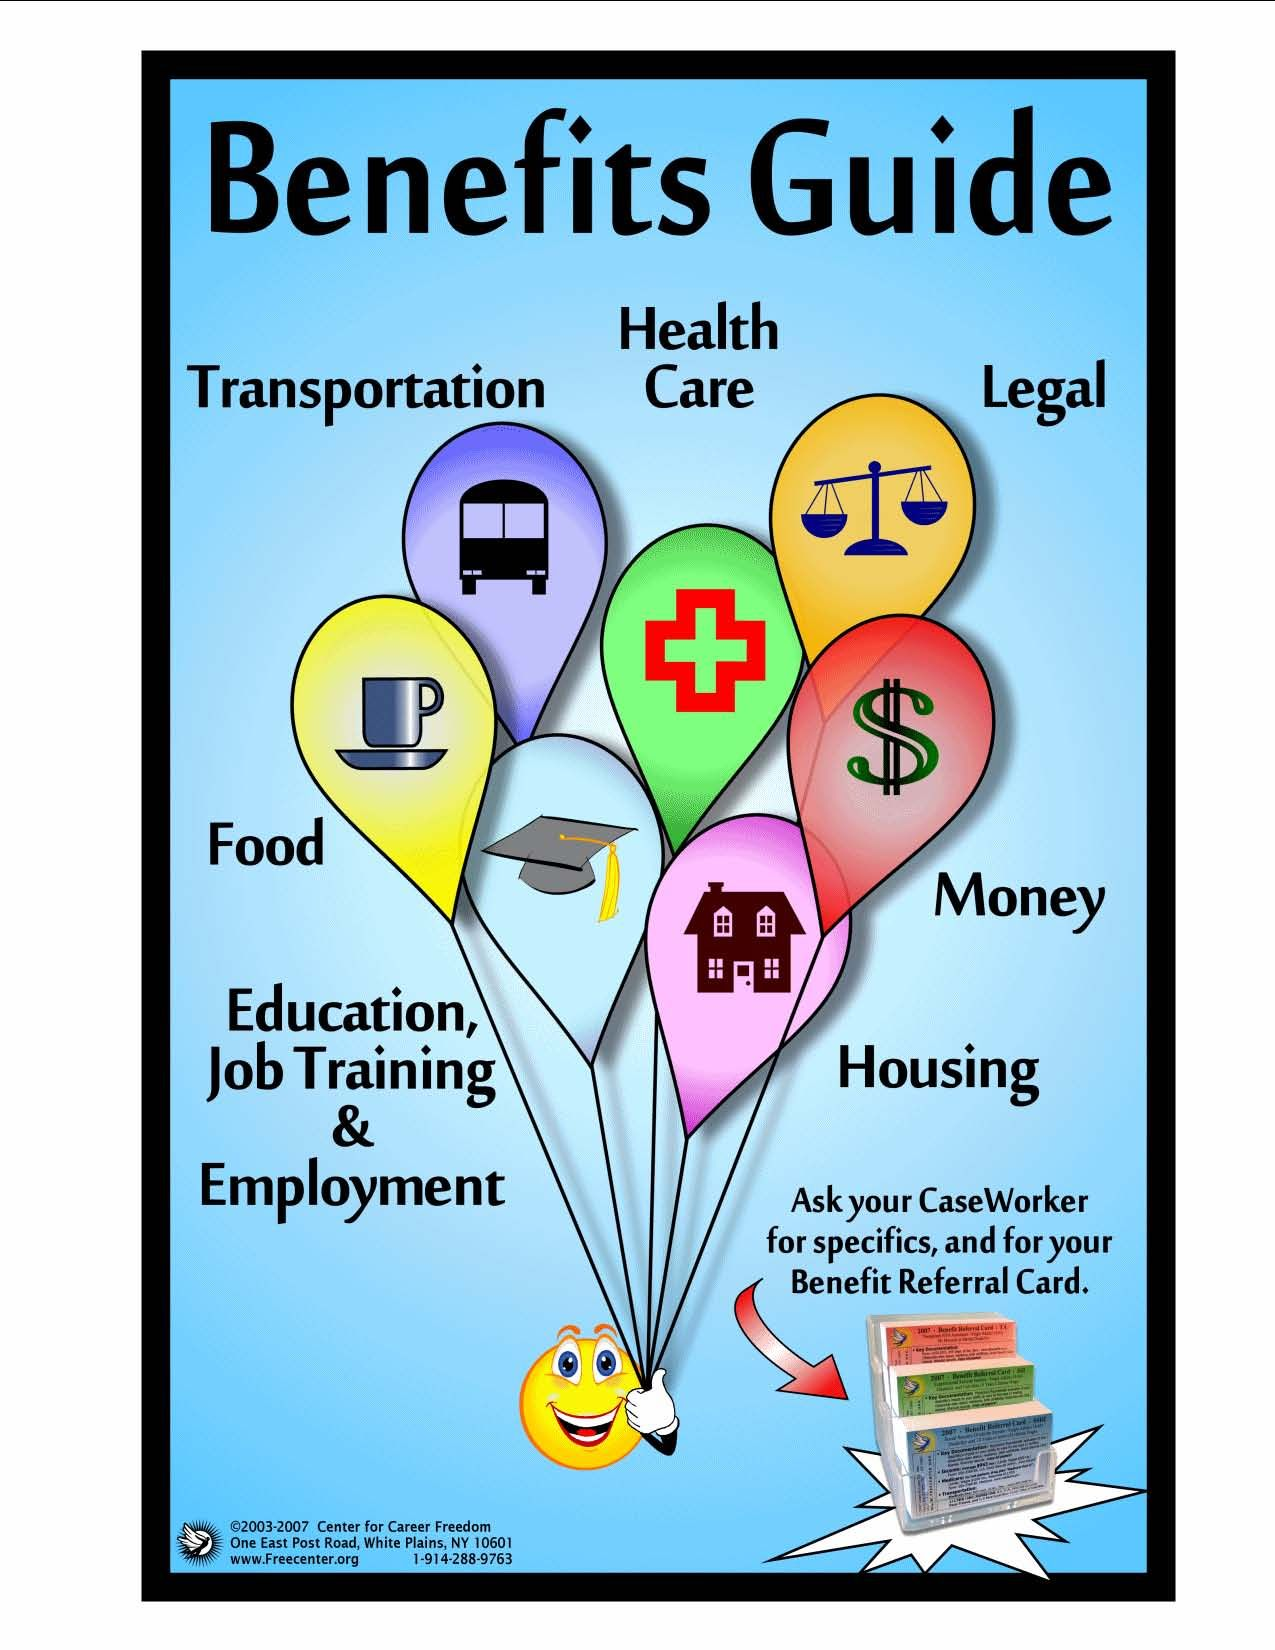 Benefits Guide Transportation, health care, legal, food